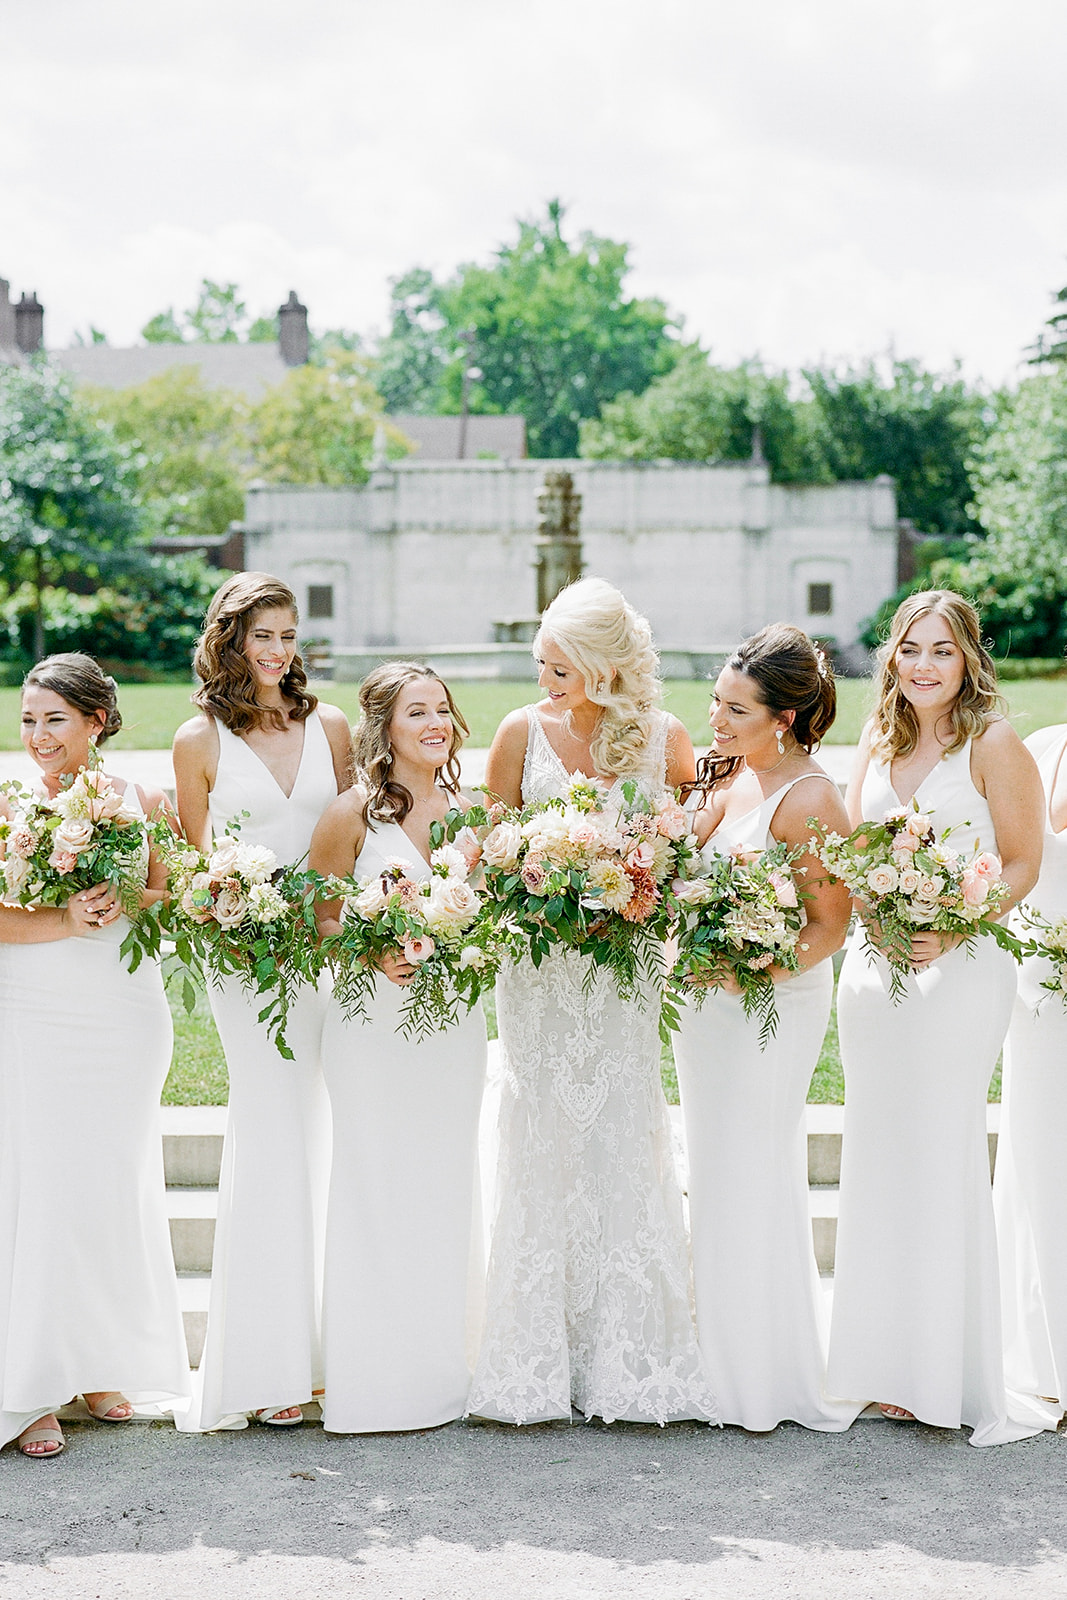 bride standing with bridesmaids wearing white dresses